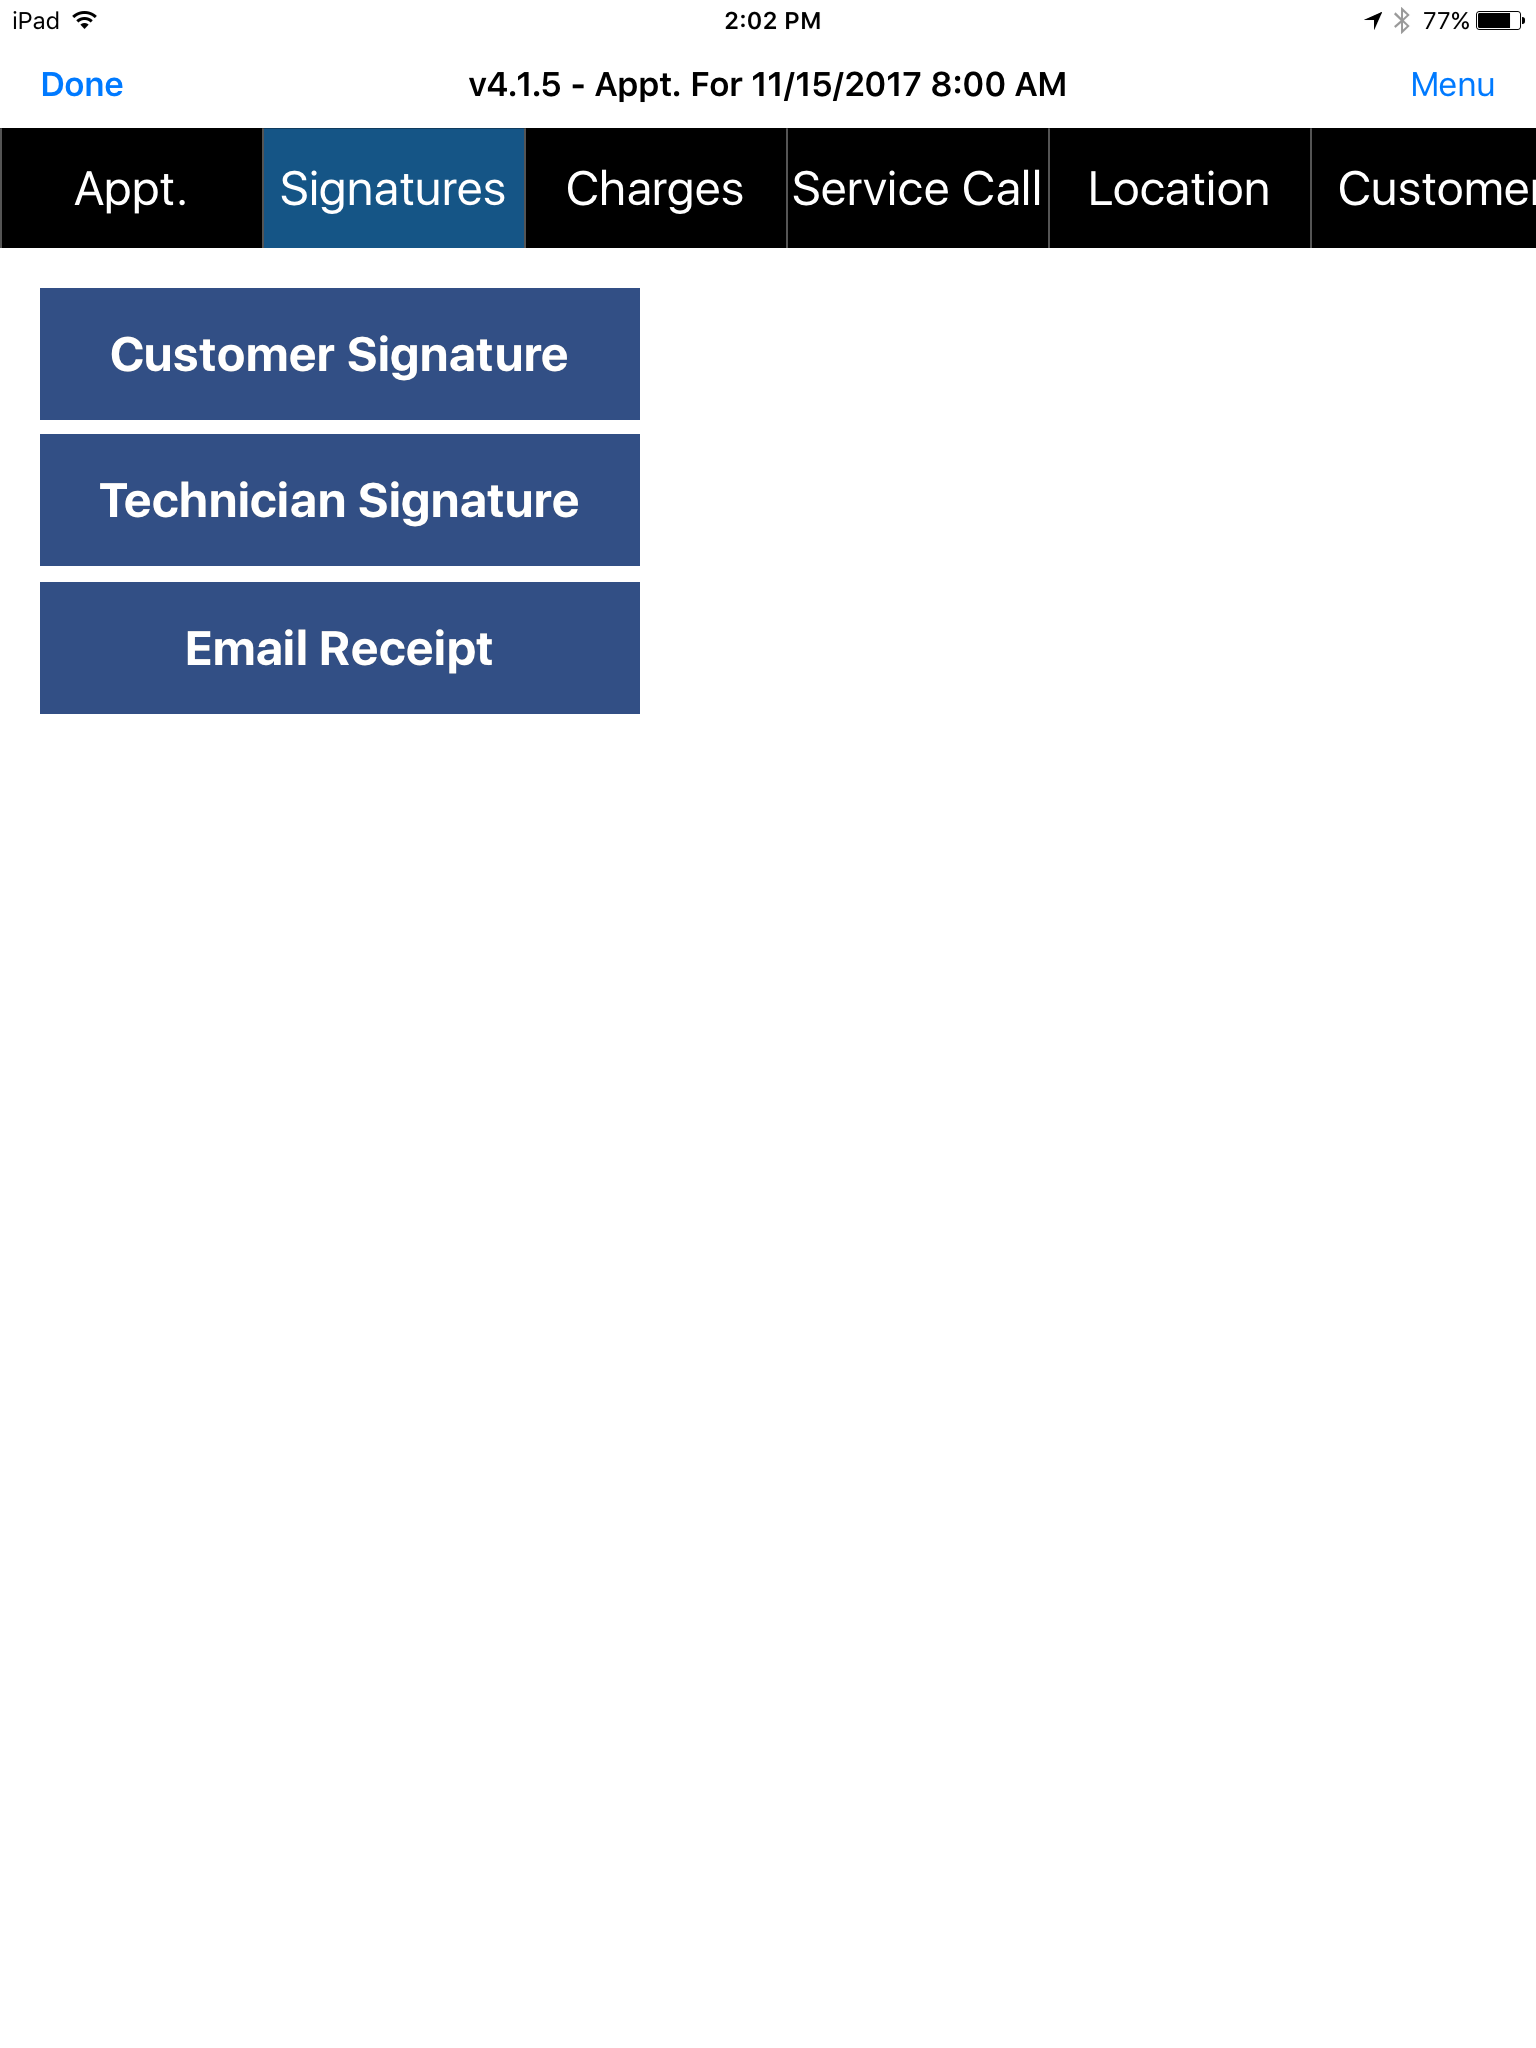 Appointment - Signature tab